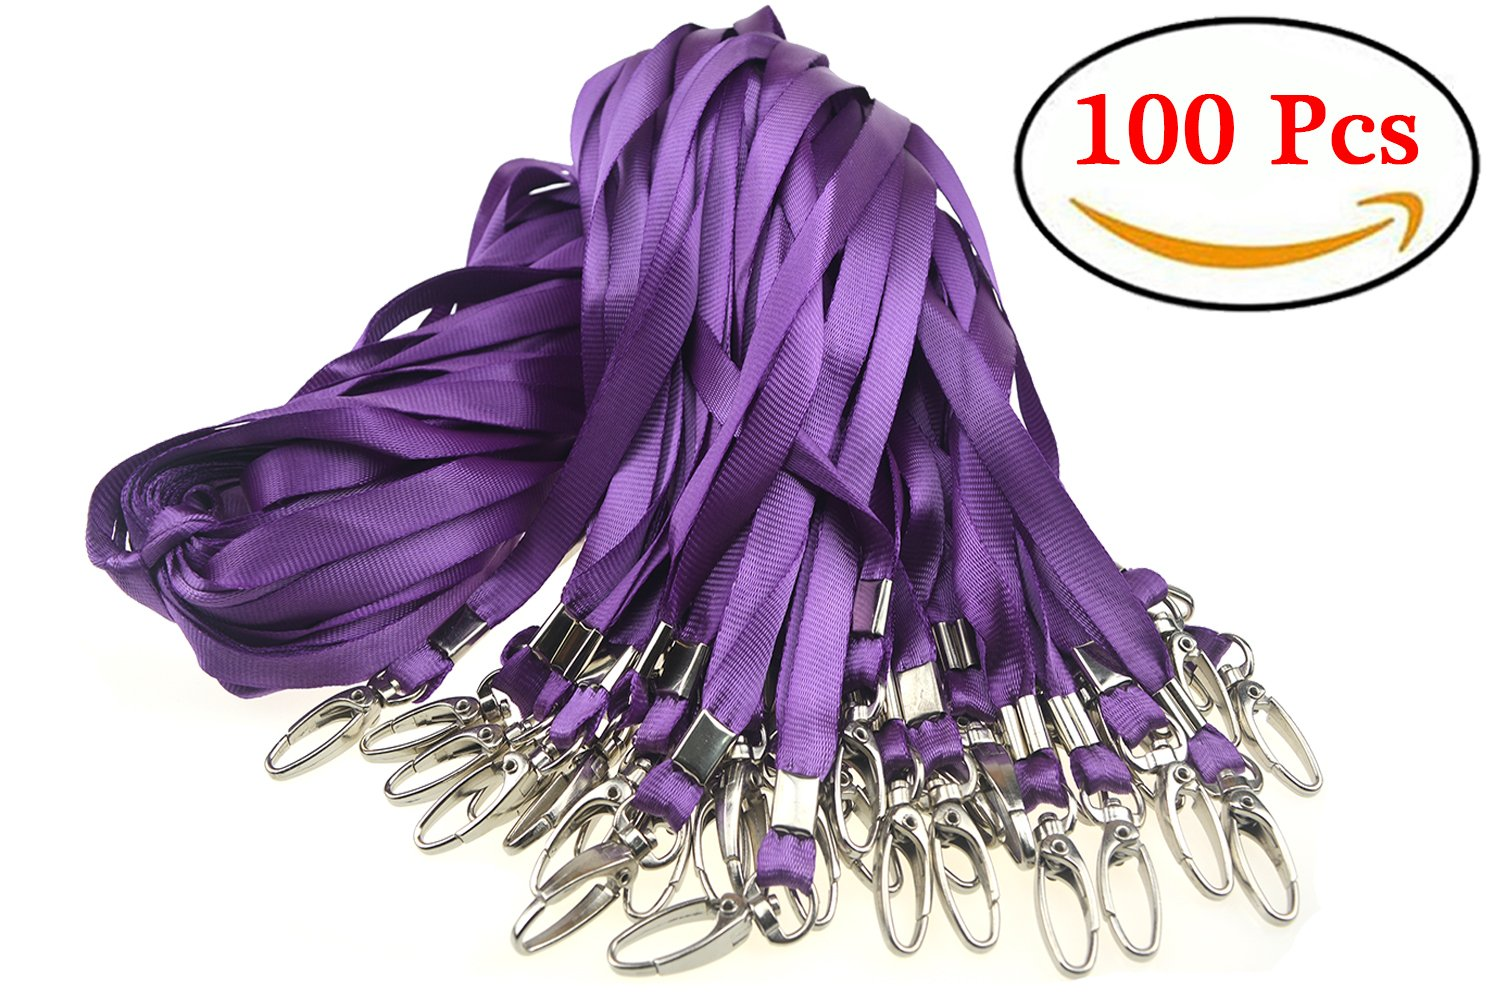 Aobear Top Quality 32 inch Lanyard with Badge Clip (100 Pcs, Purple)